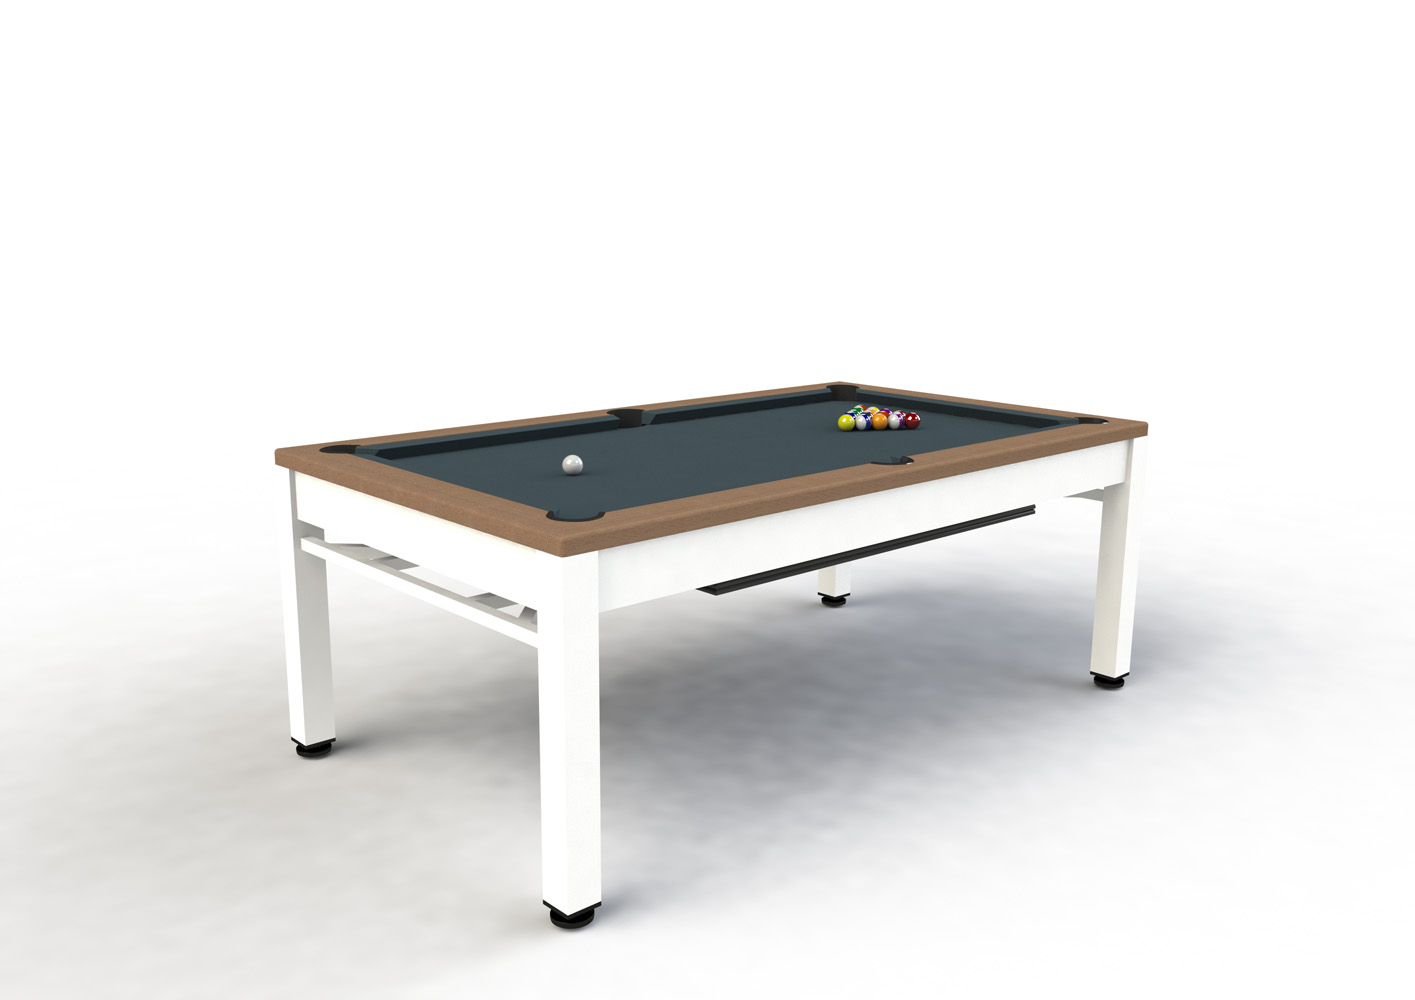 Riley Neptune 7ft Outdoor Pool Table